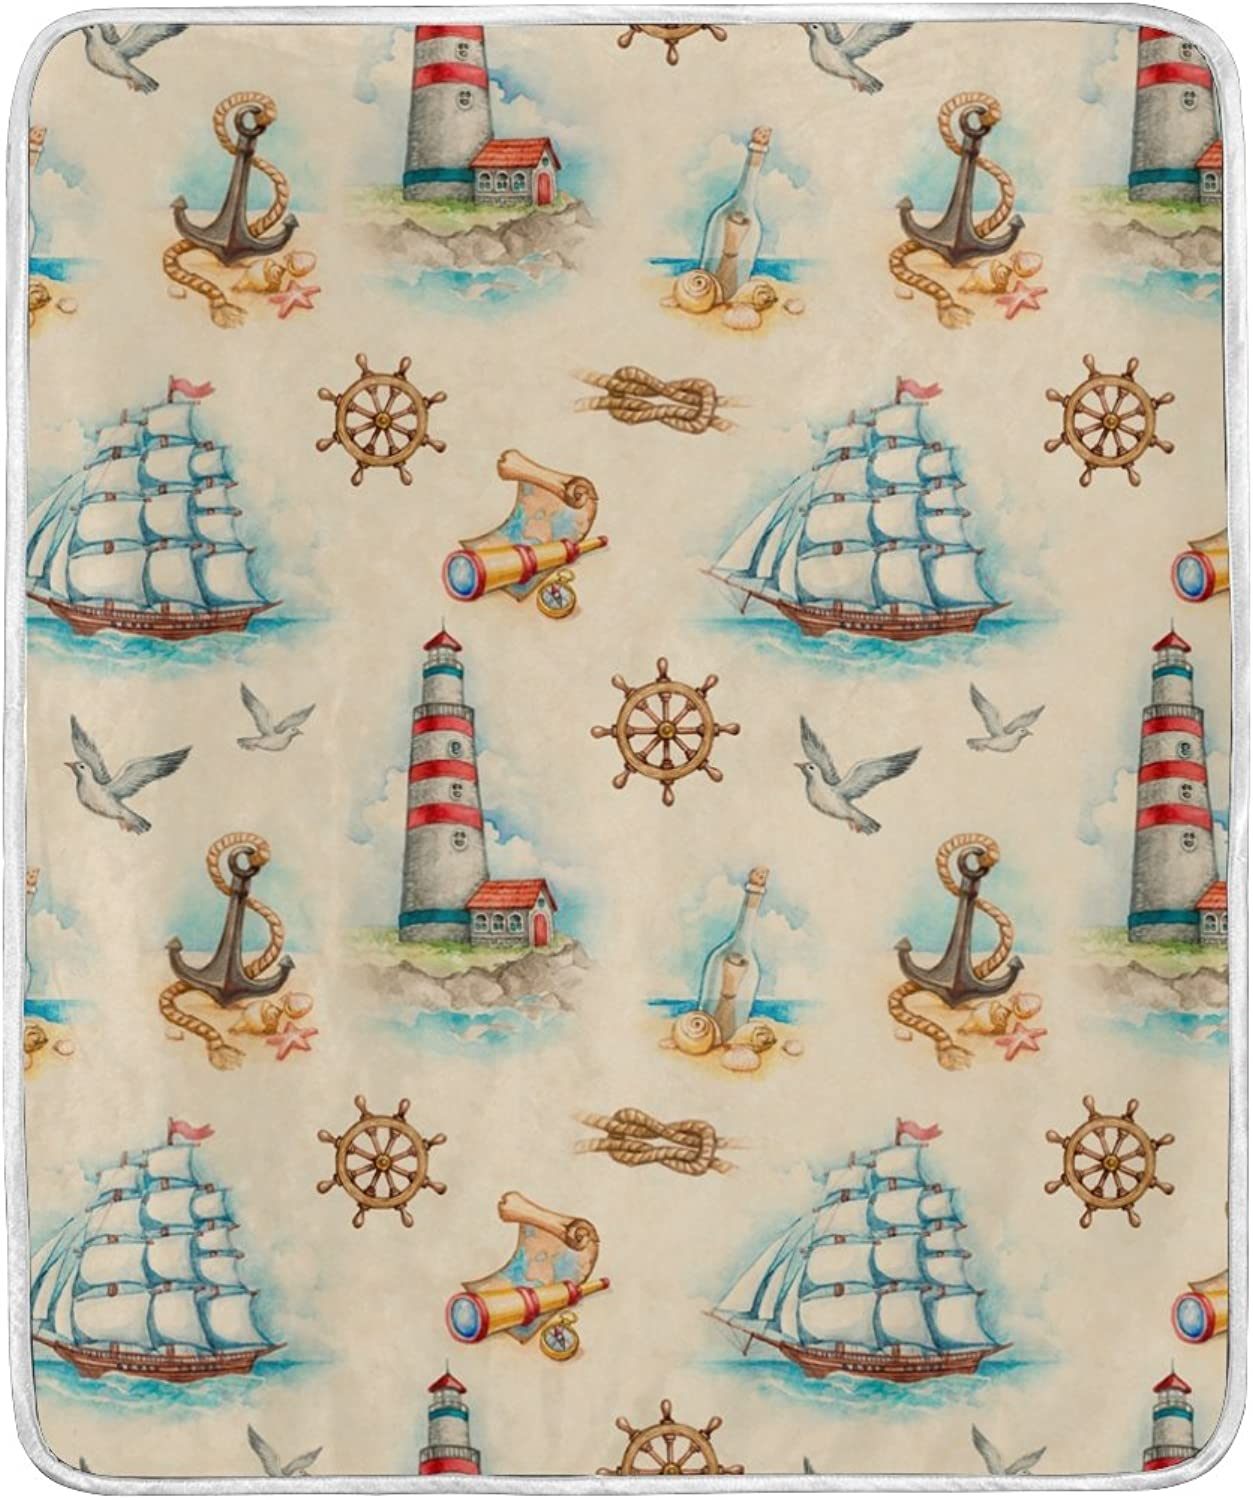 ALIREA Nautical Watercolor Pattern Super Soft Warm Blanket Lightweight Throw Blankets for Bed Couch Sofa Travelling Camping 60 x 50 Inch for Kids Boys Girls